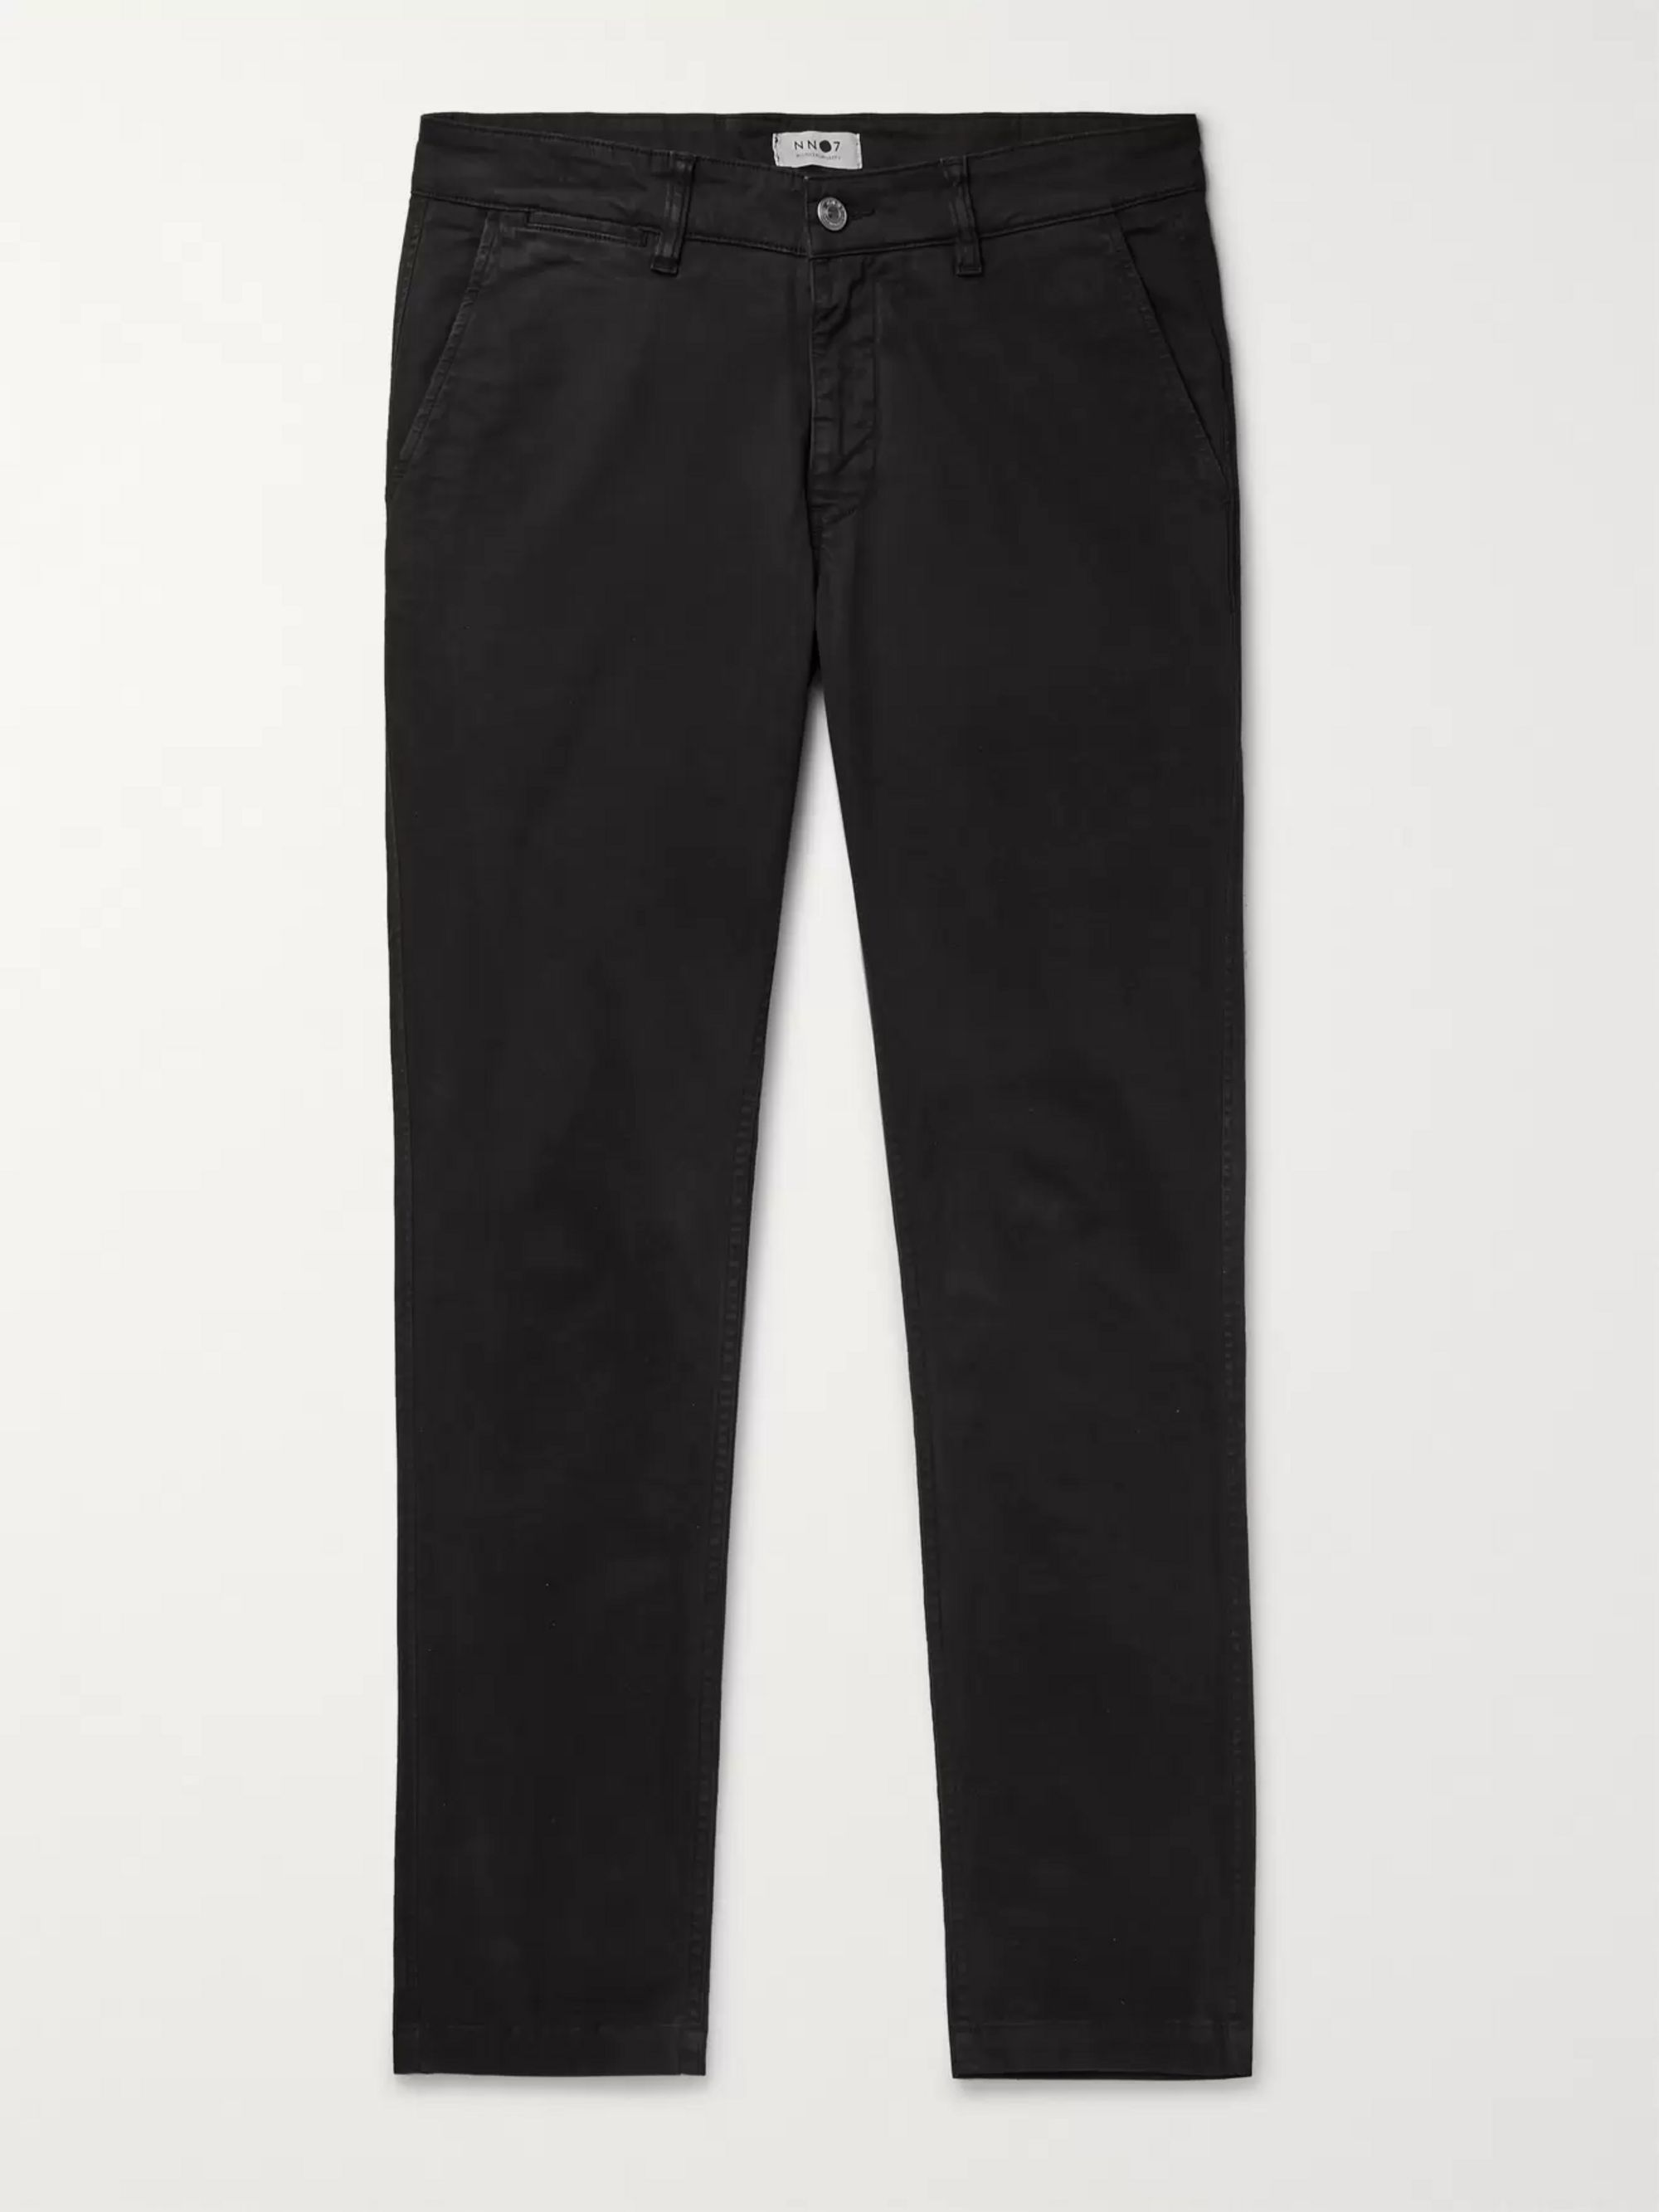 NN07 Black Marco Slim-Fit Cotton-Blend Twill Chinos